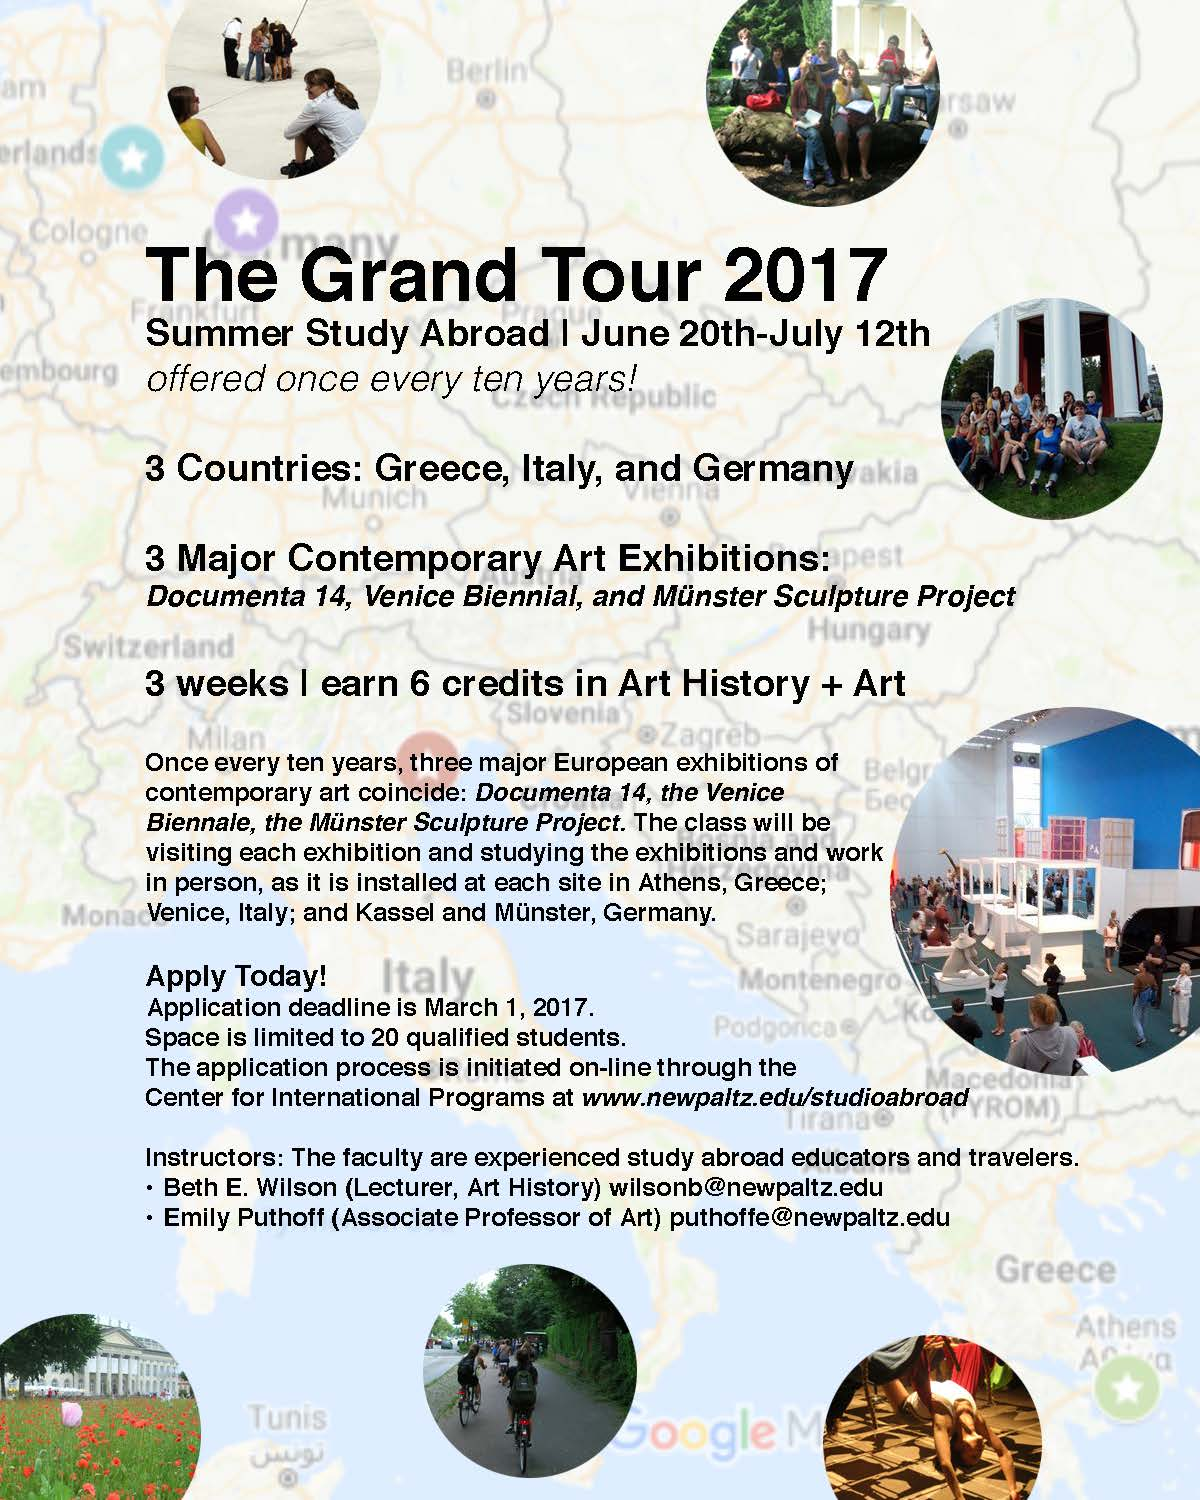 Art and Art History study abroad program information for Summer 2017